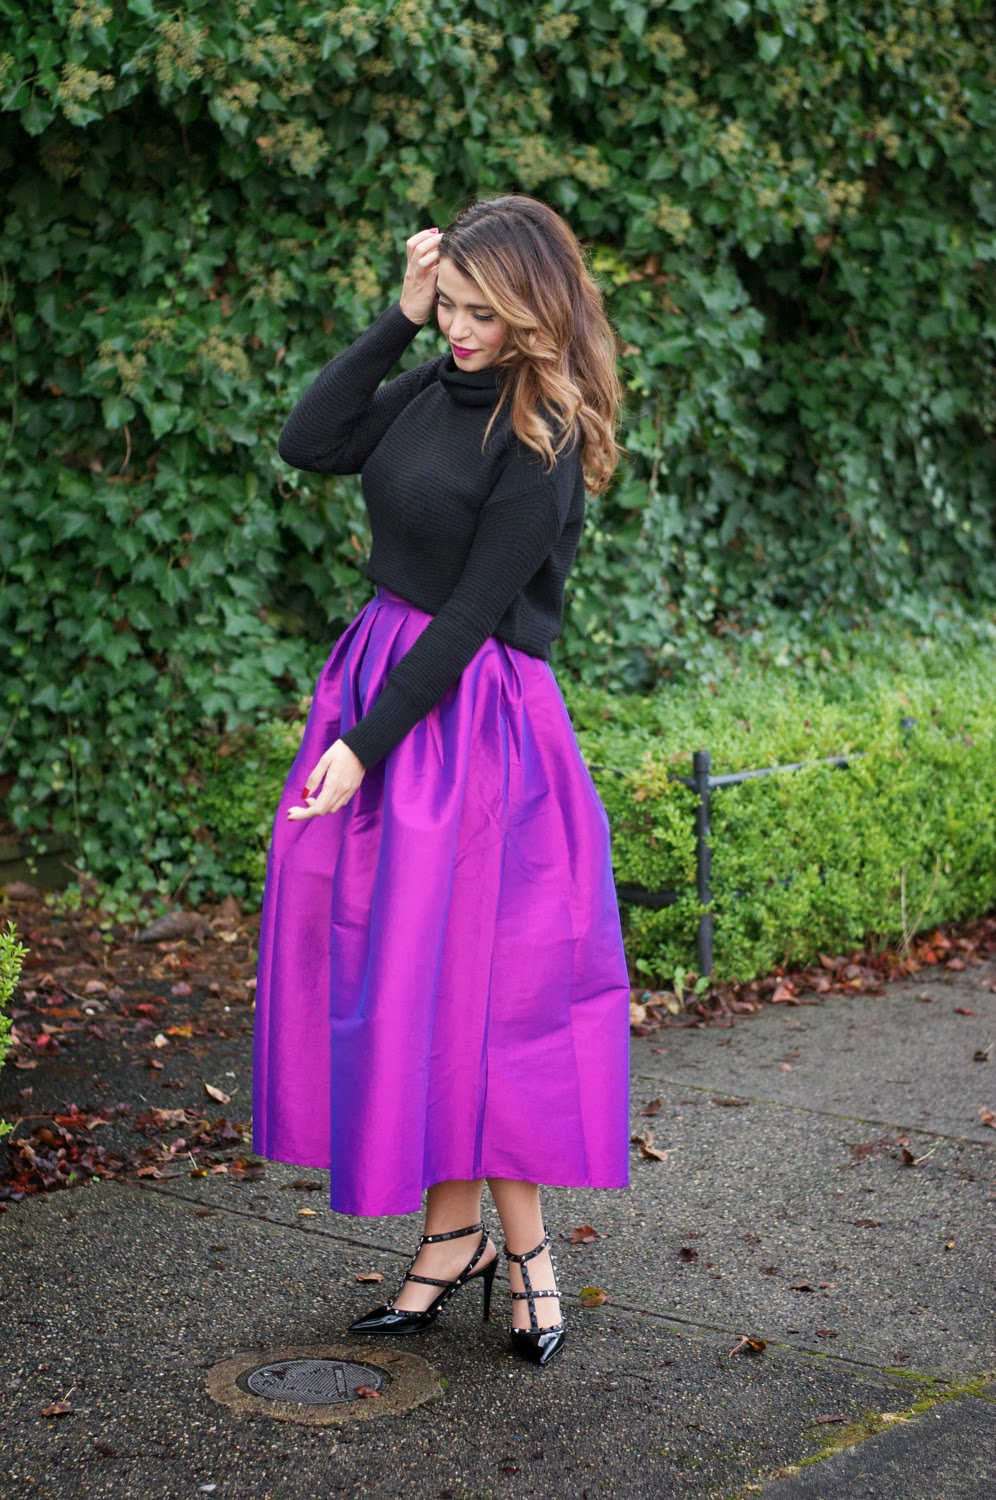 ac591ce2bf Ball Gown Skirts & Cozy Knits. Skirt Chicwish // Sweater Banana Republic ...